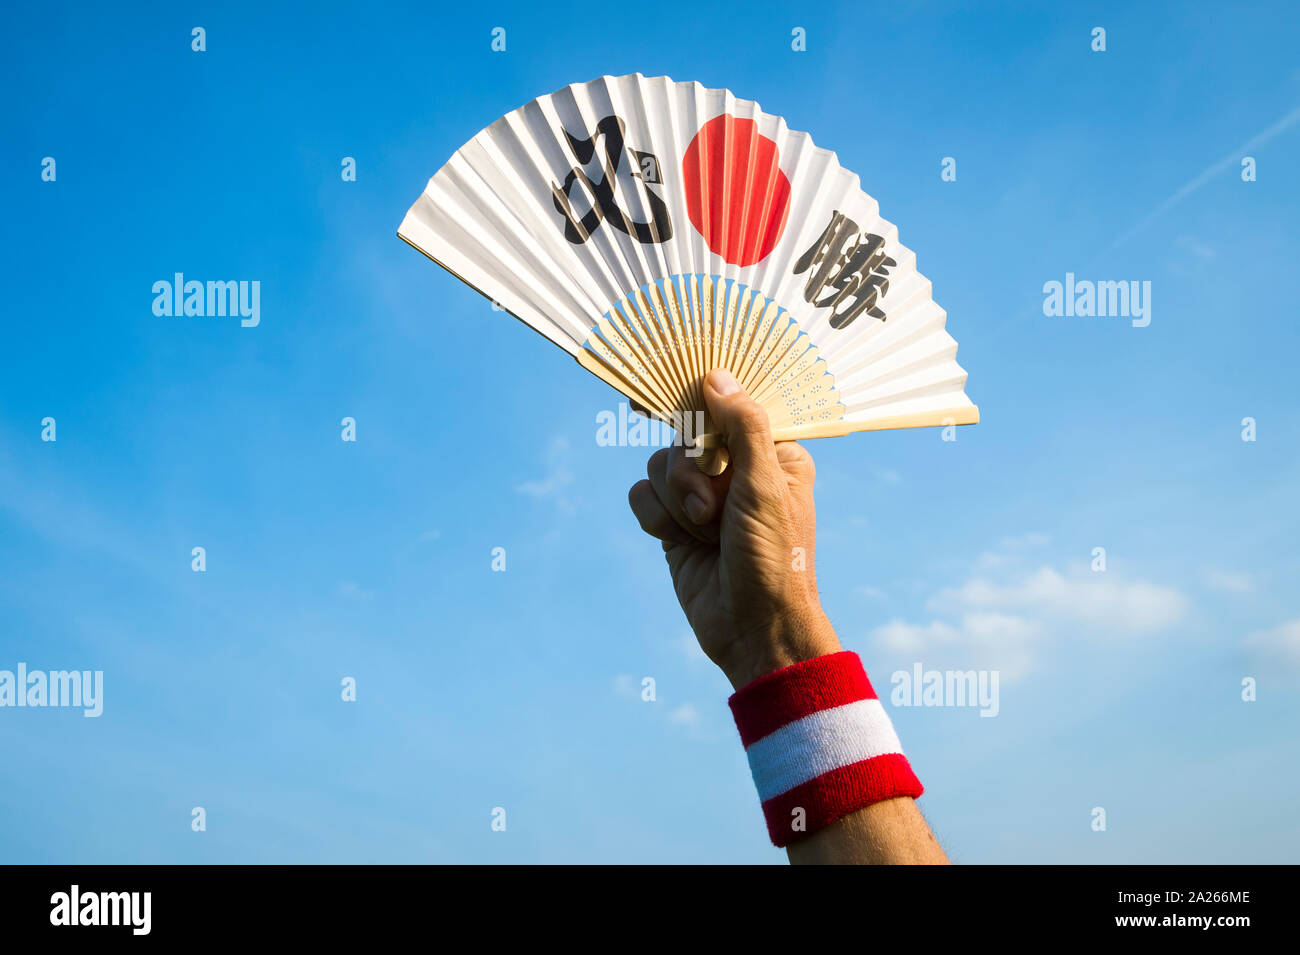 Hand of sports supporter with Japan flag colors wristband holding fan decorated with kanji characters spelling out hisshō, certain victory in English Stock Photo